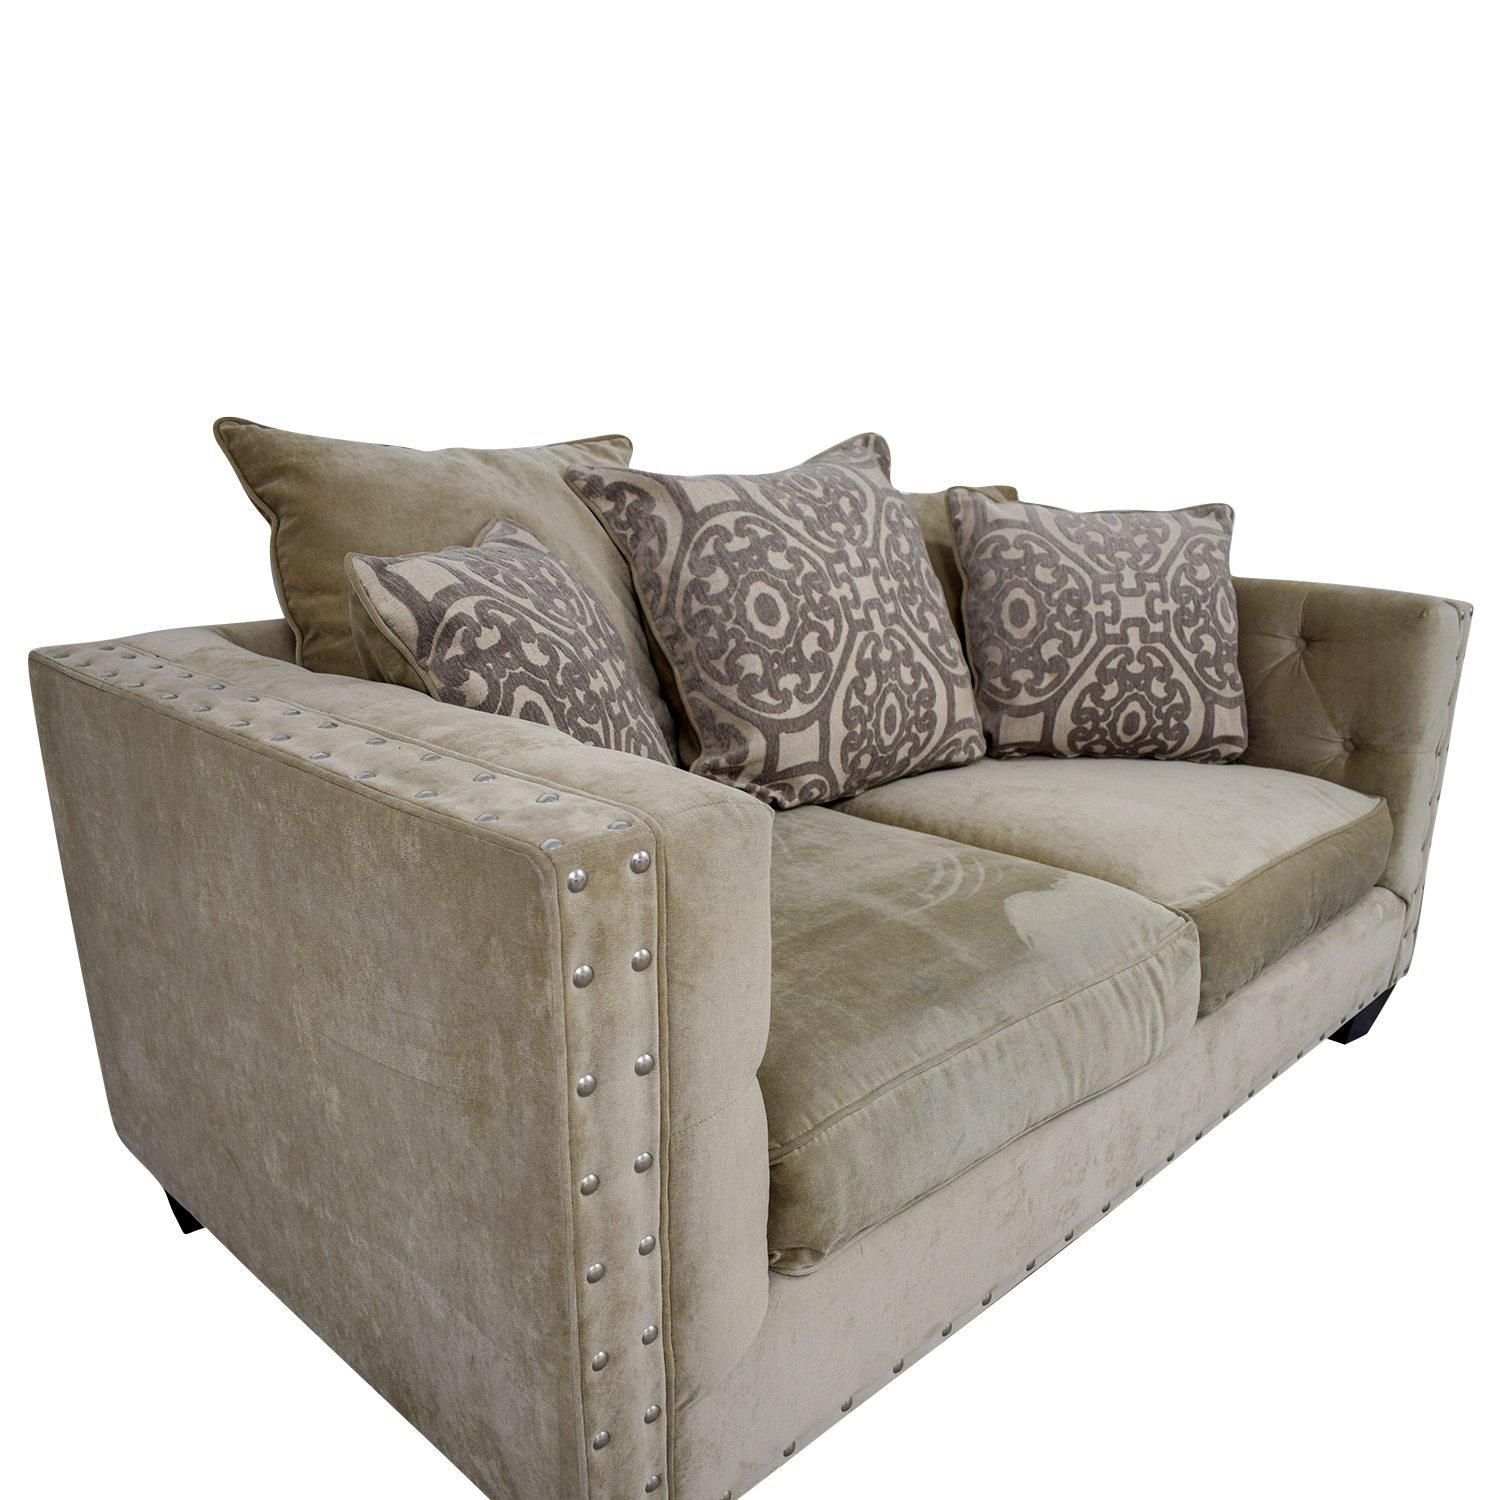 shop Raymour & Flanigan Raymour & Flanigan Cindy Crawford Beige Suede Loveseat online